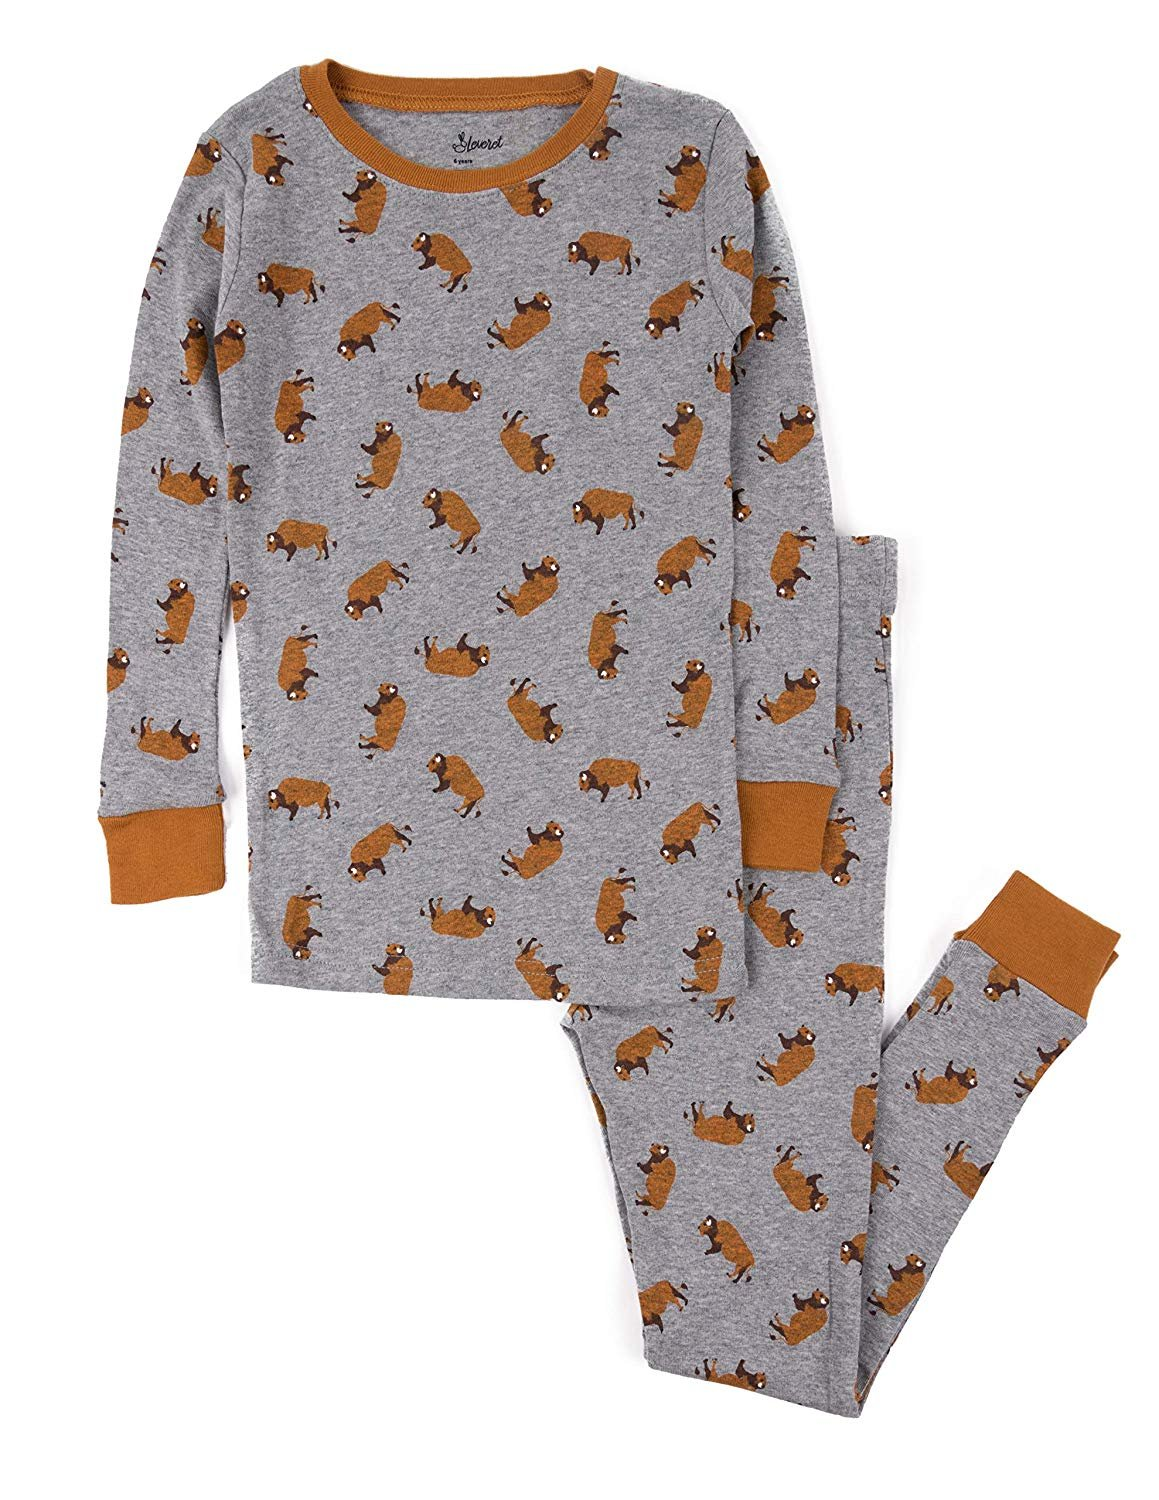 Leveret Kids Pajamas Bison Overall Print Boys & Girls 2 Piece pjs Set 100% Cotton Size 8 Years